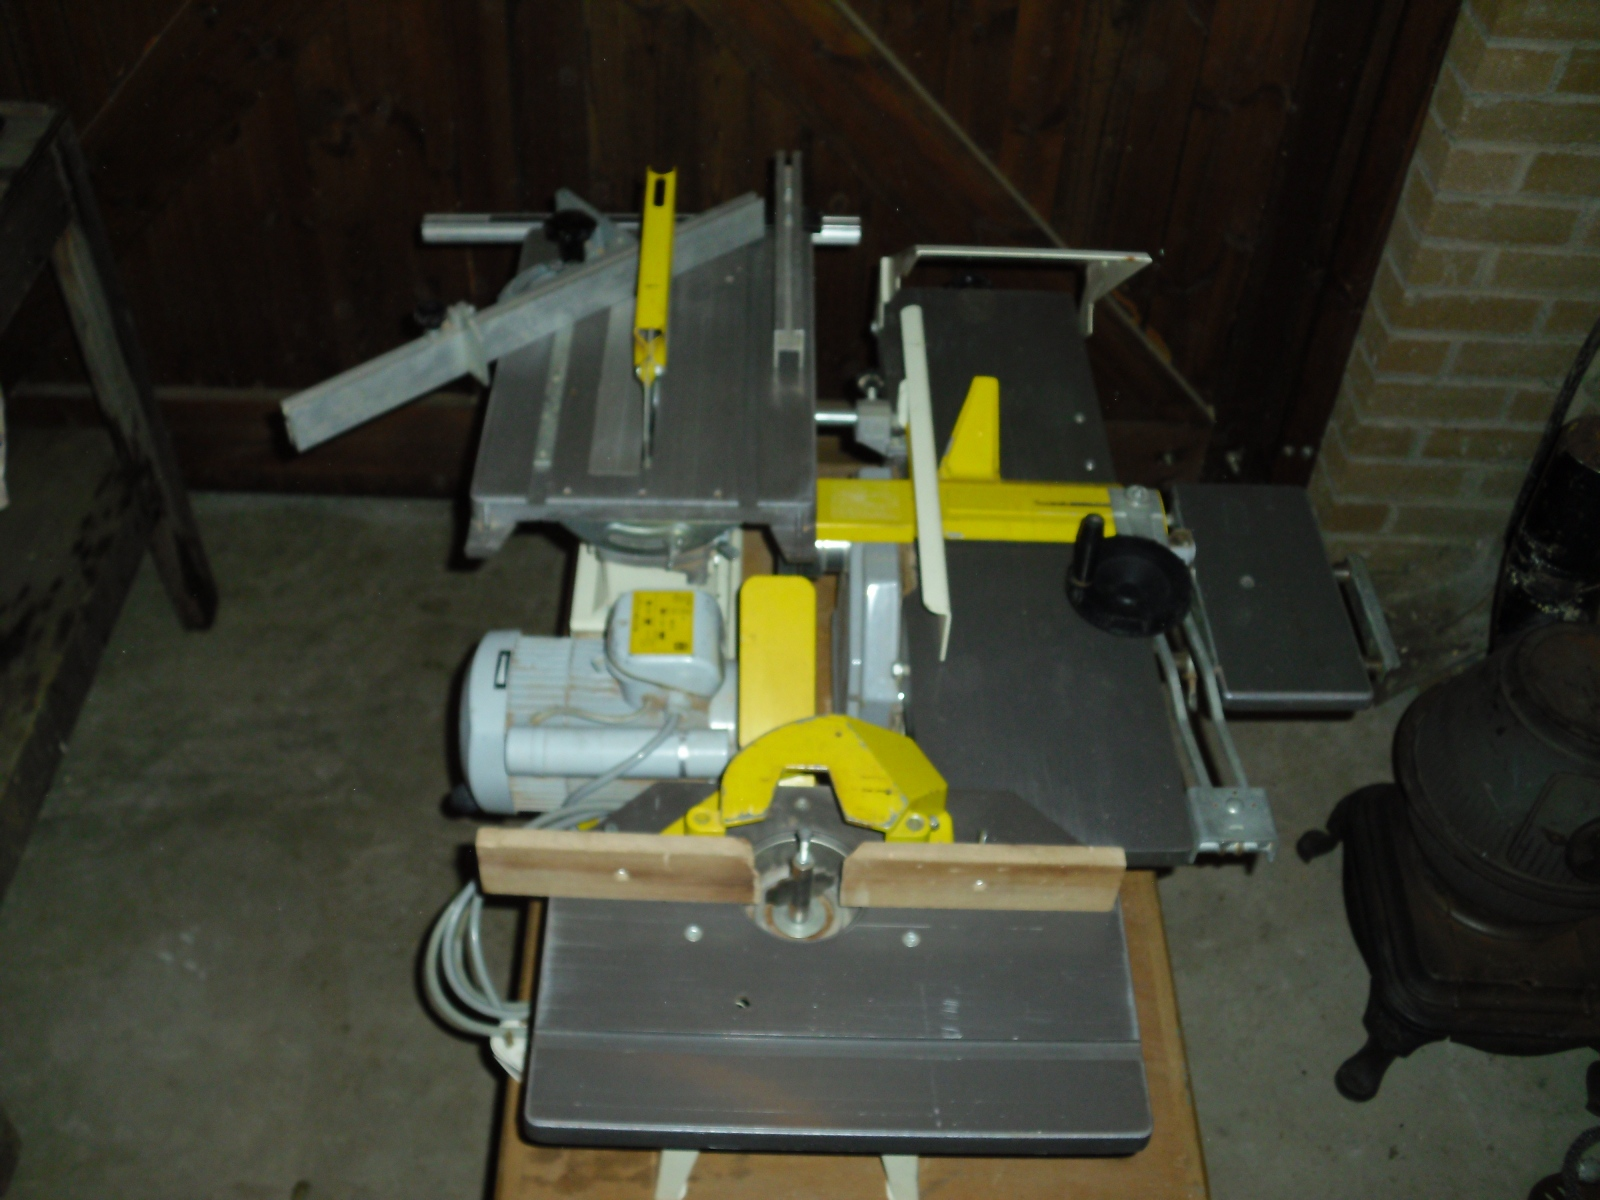 The Kity 5 Machine Centre Popular Woodworking Magazine